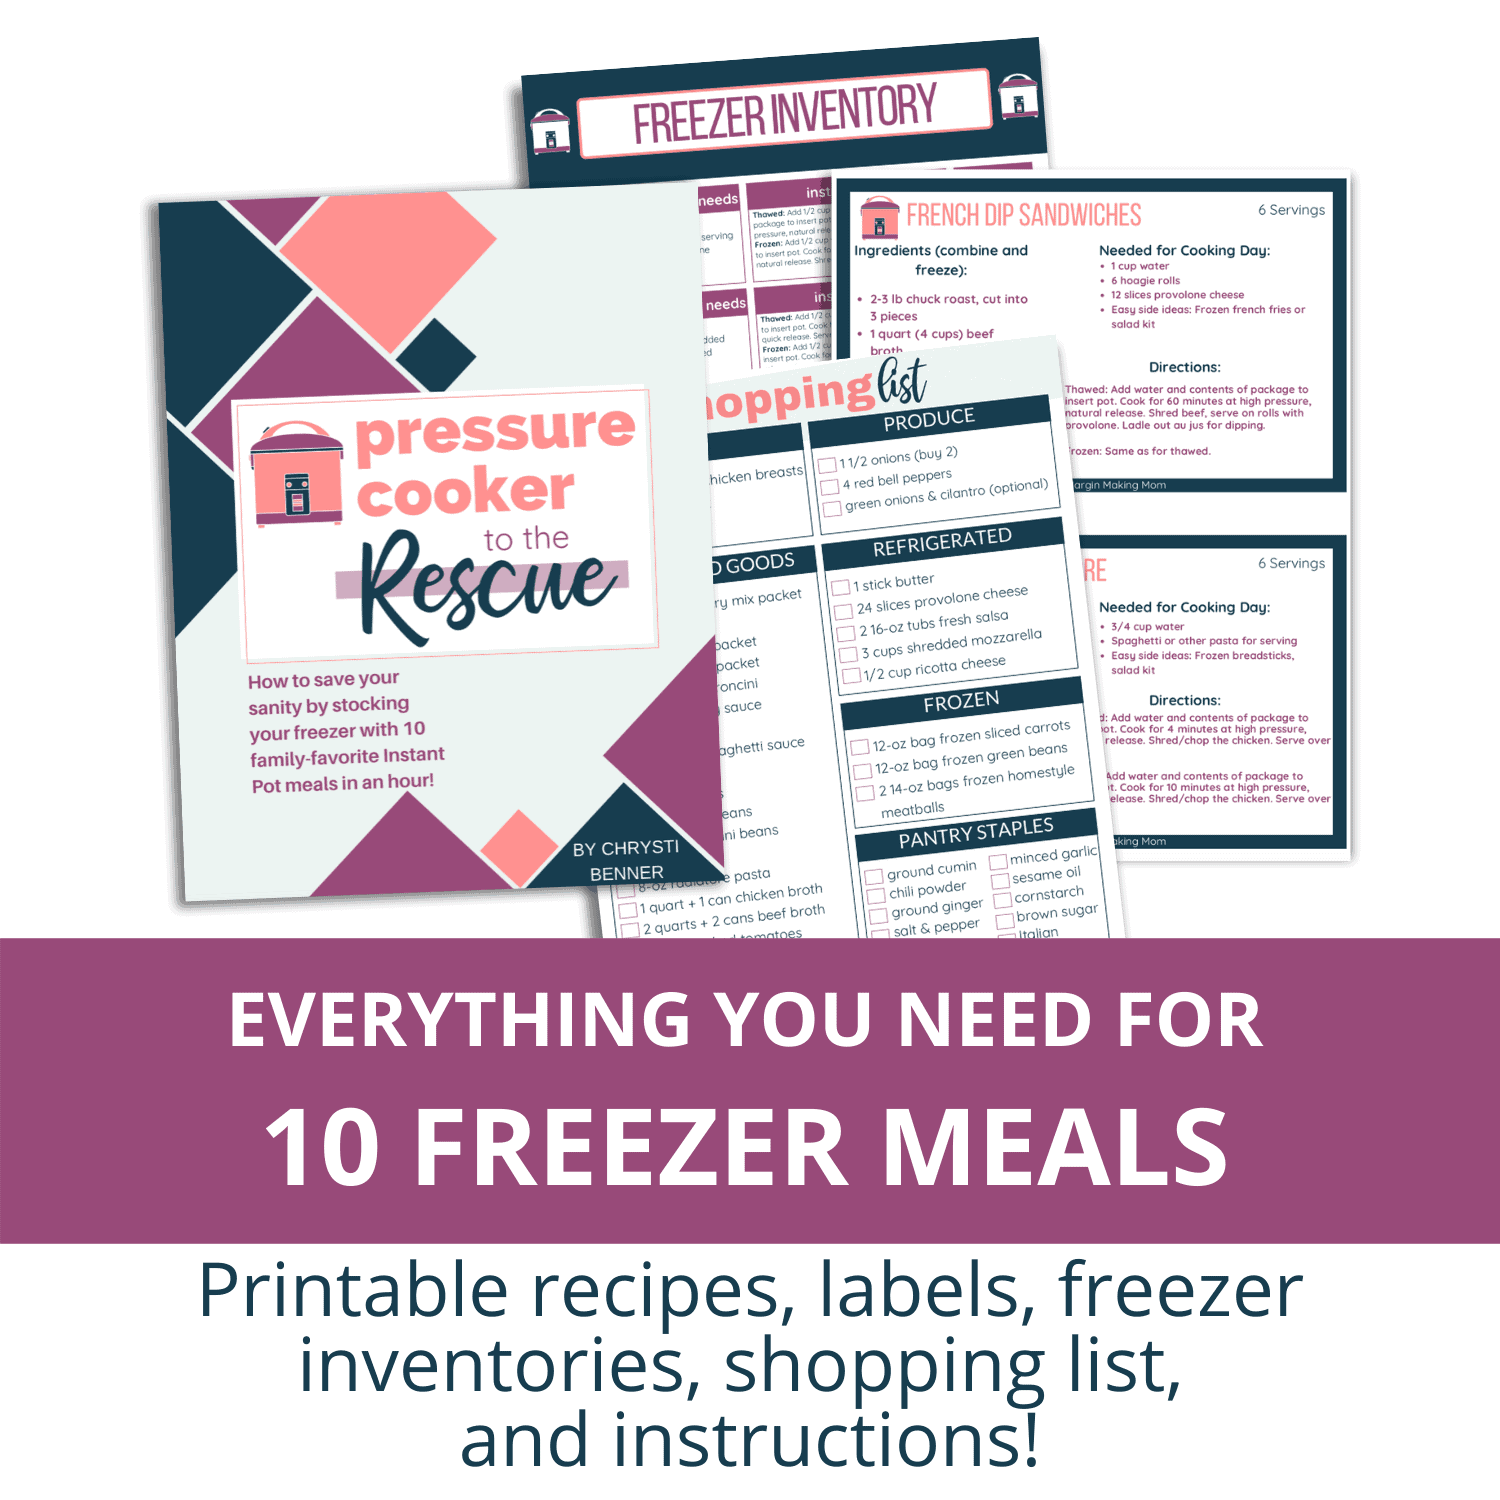 pressure cooker to the rescue instant pot freezer meals mockup